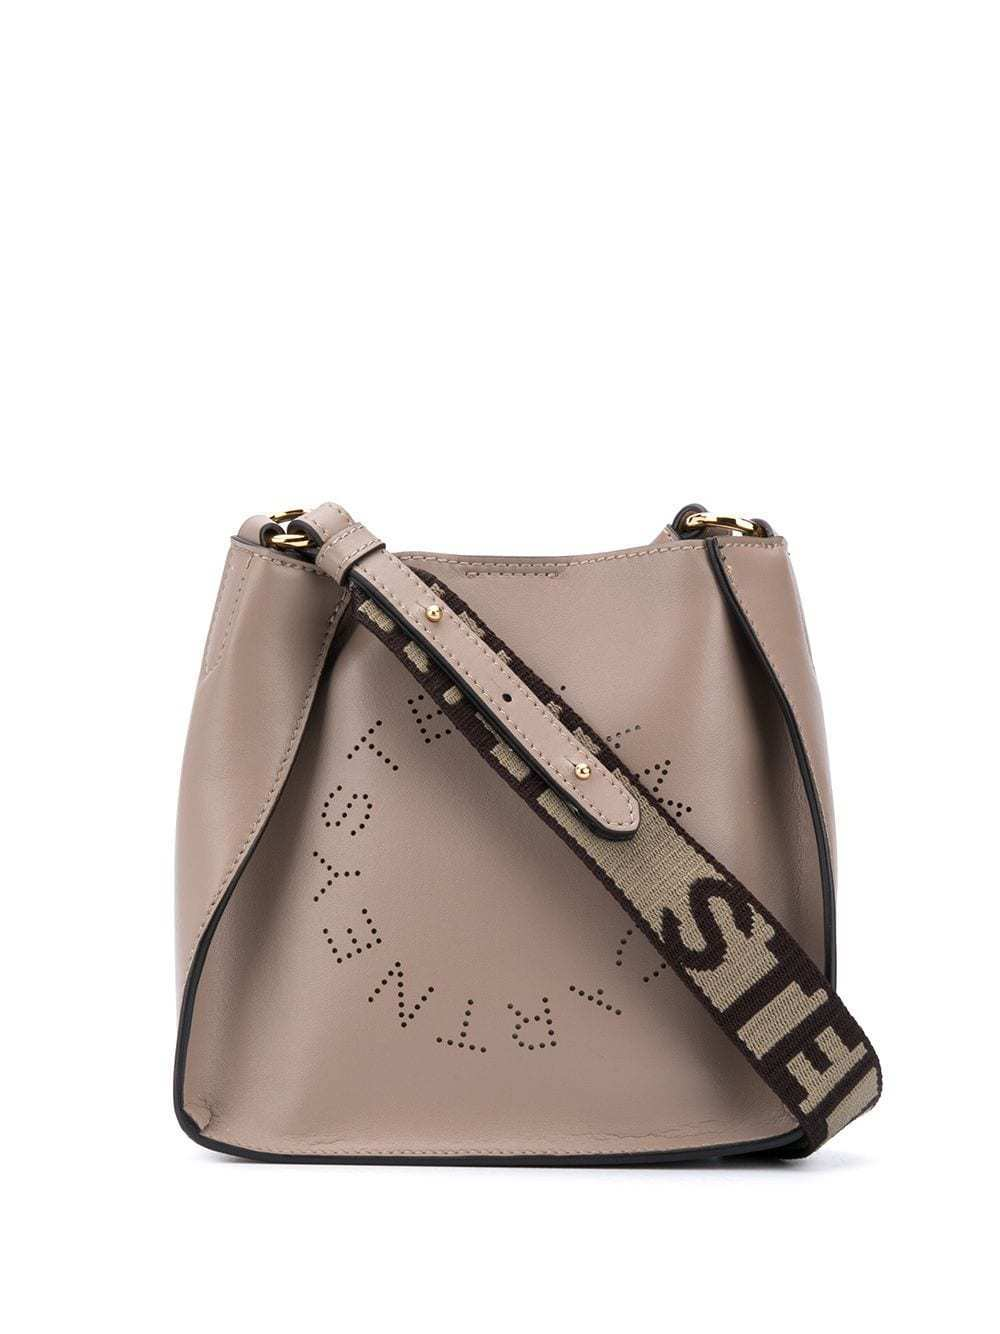 shop stella mccartney bags